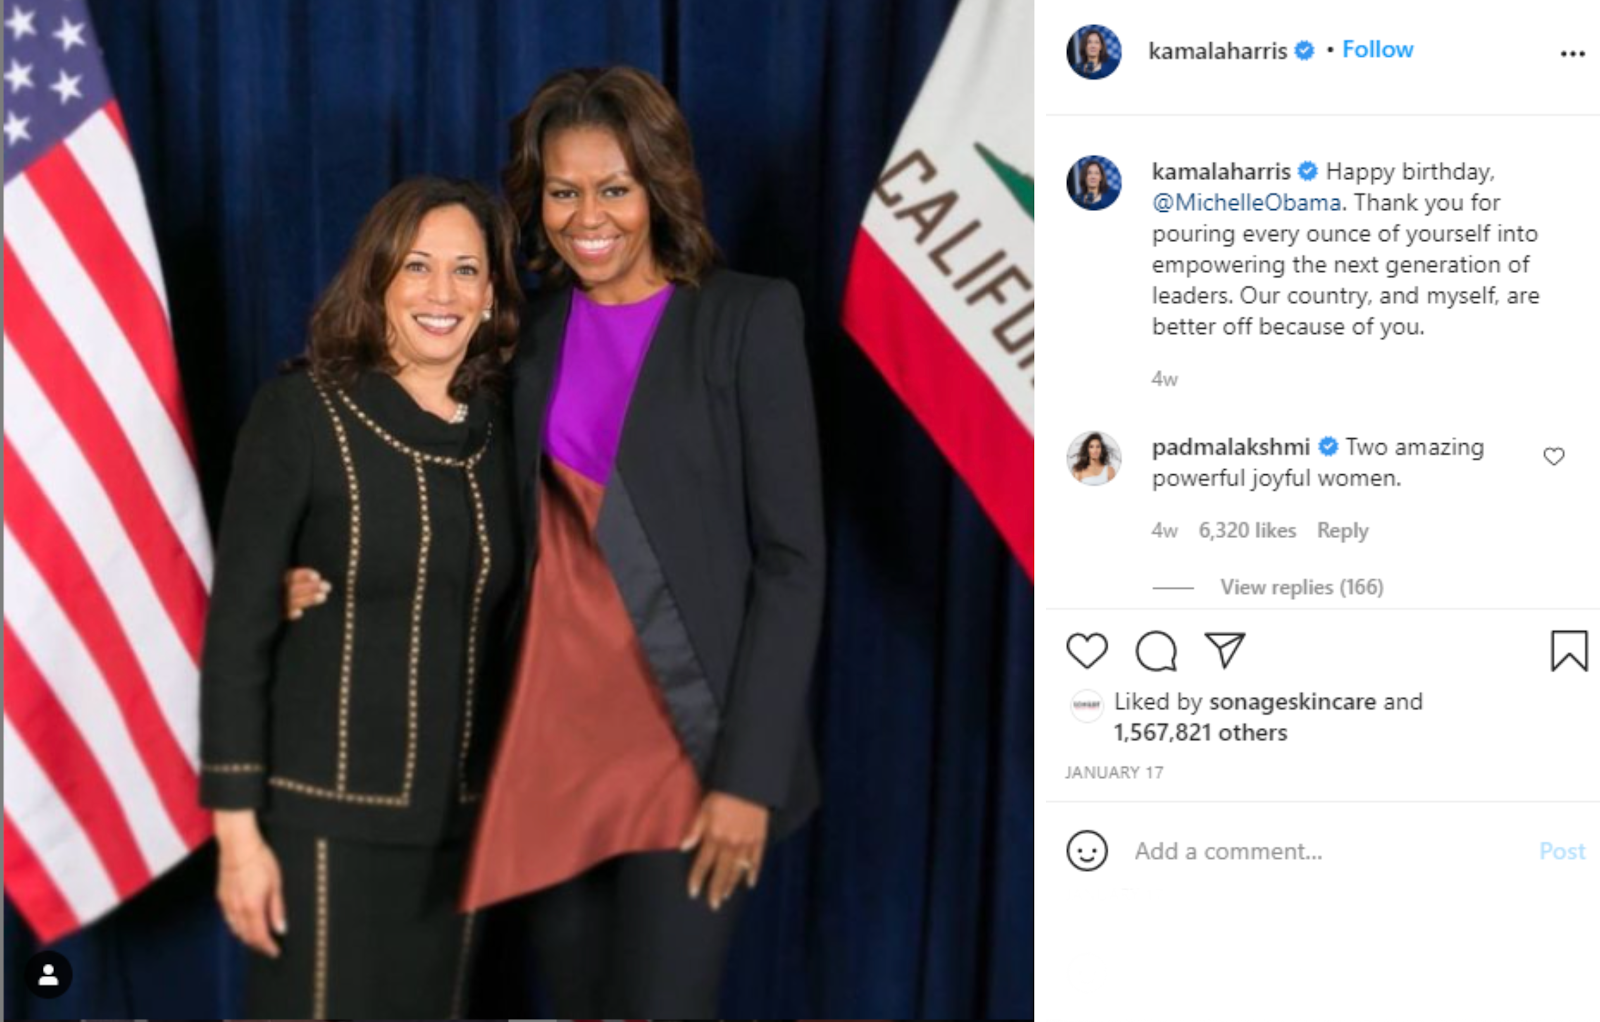 Kamala Instagram mentions example